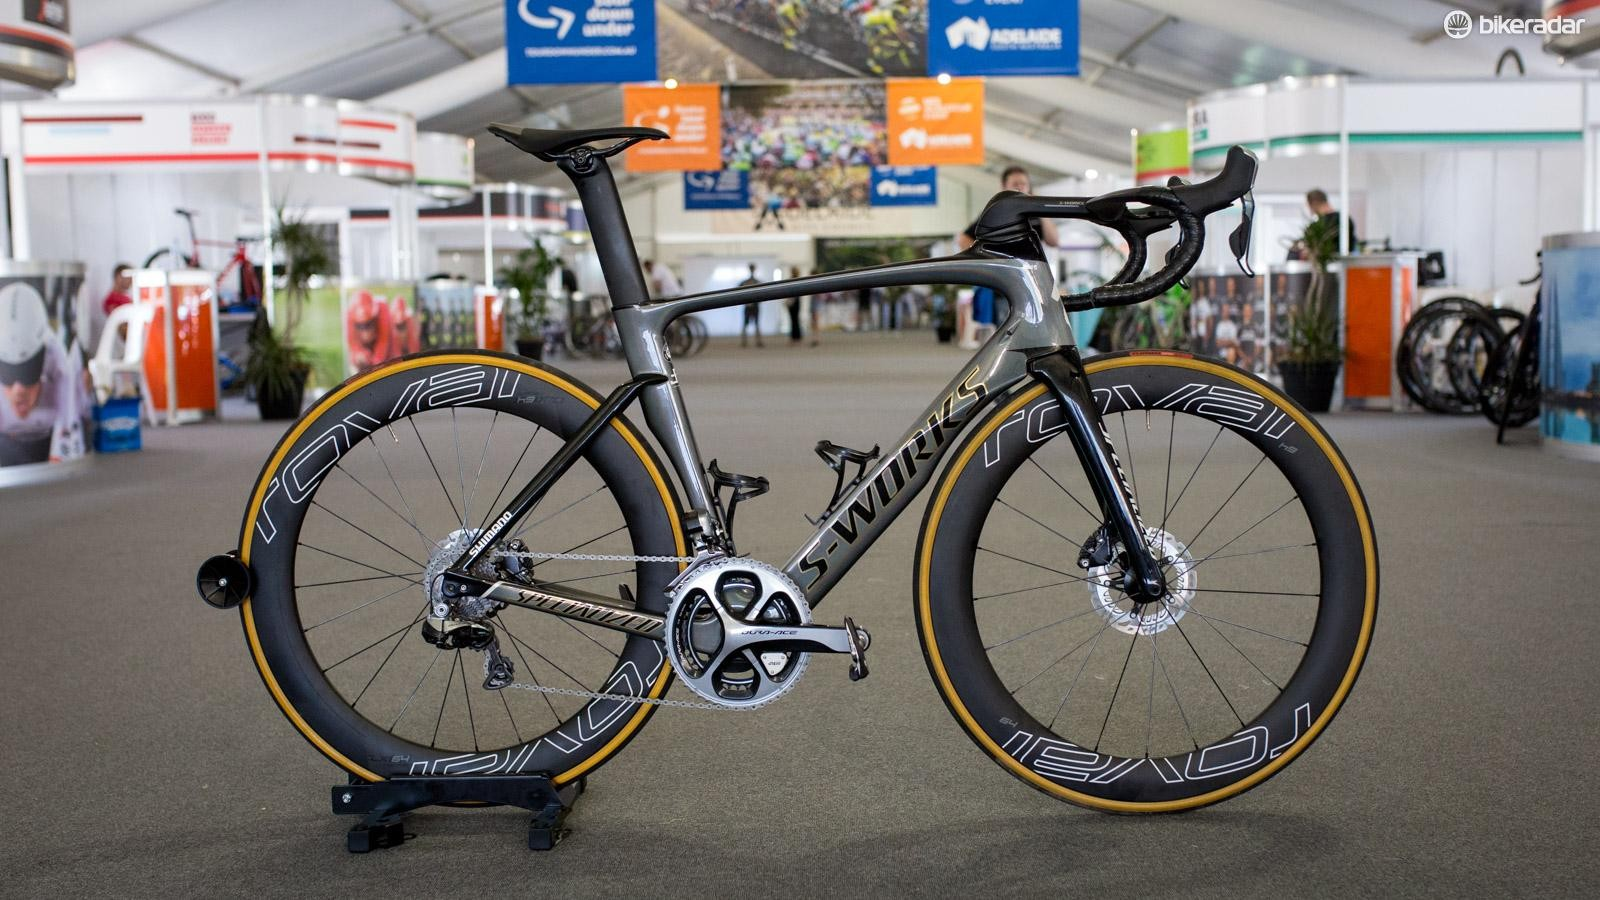 Sagan's Venge ViAS Disc was on display. It's pretty heavy tipping our scales at 8.46kg